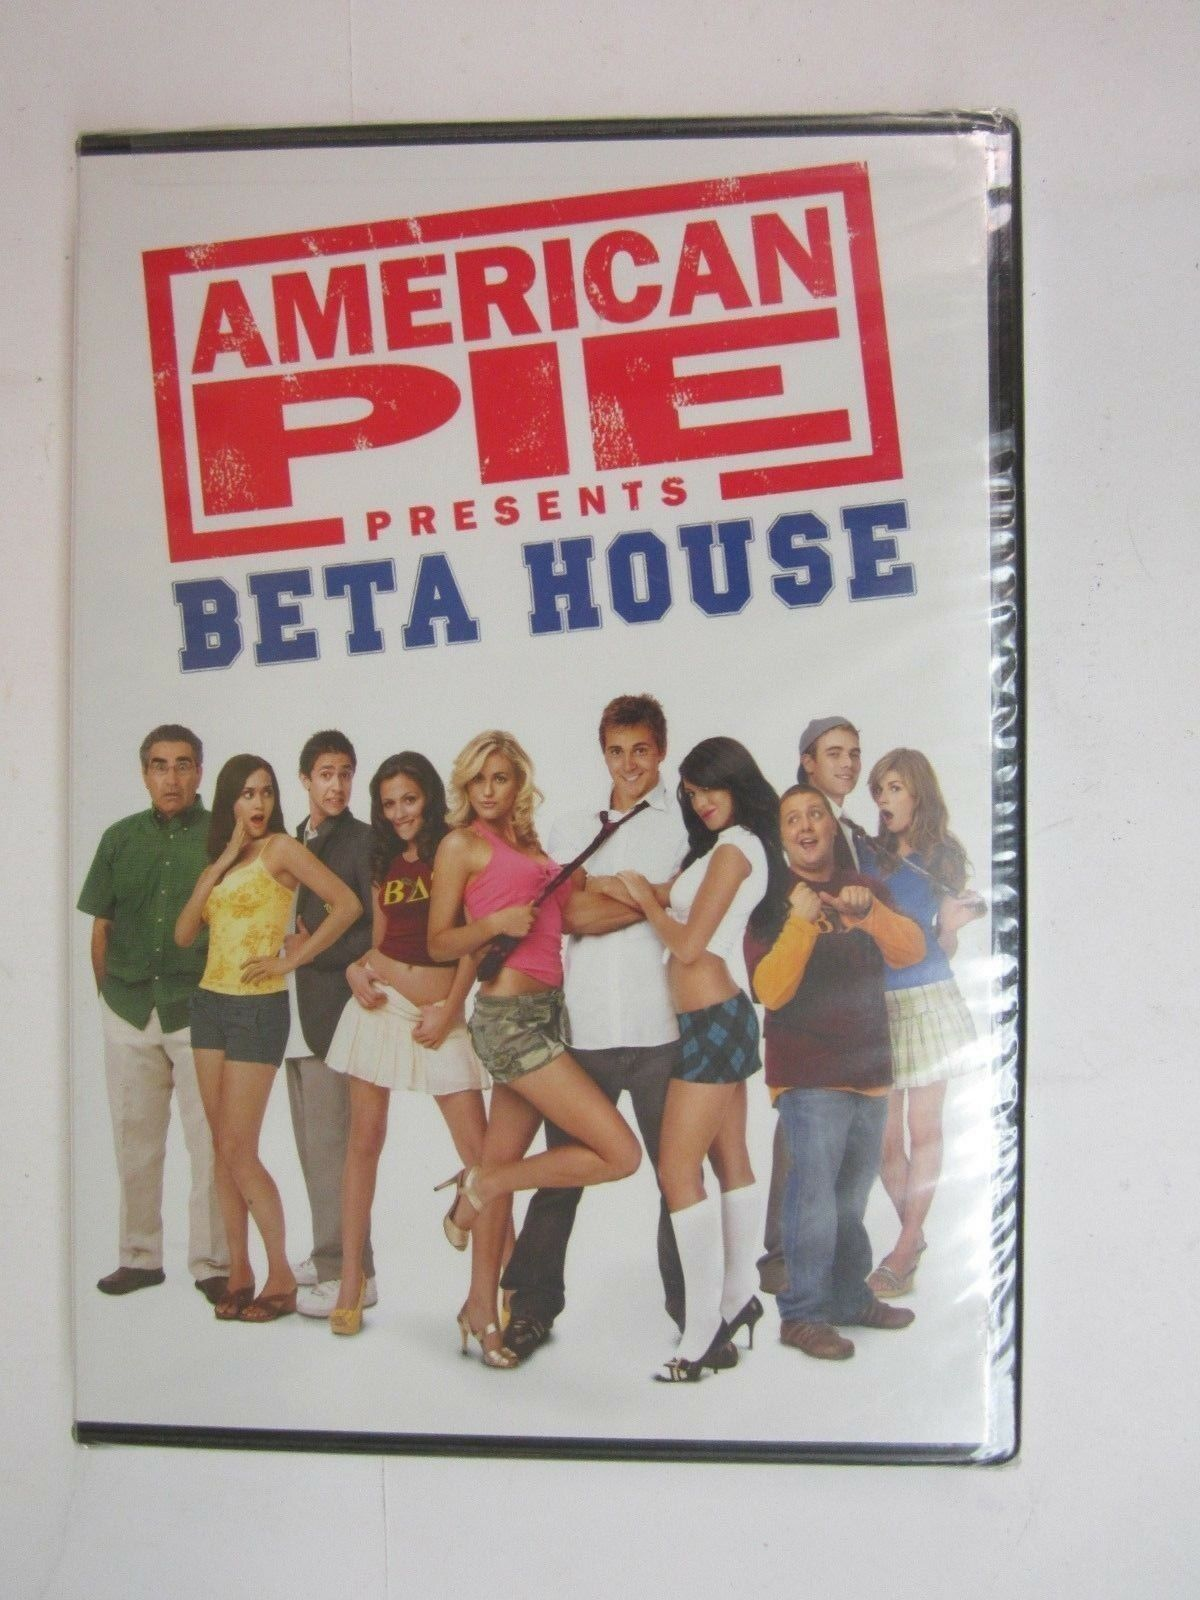 American Pie Presents Beta House Full Movie american pie presents: beta house (dvd, 2007, full frame rated)